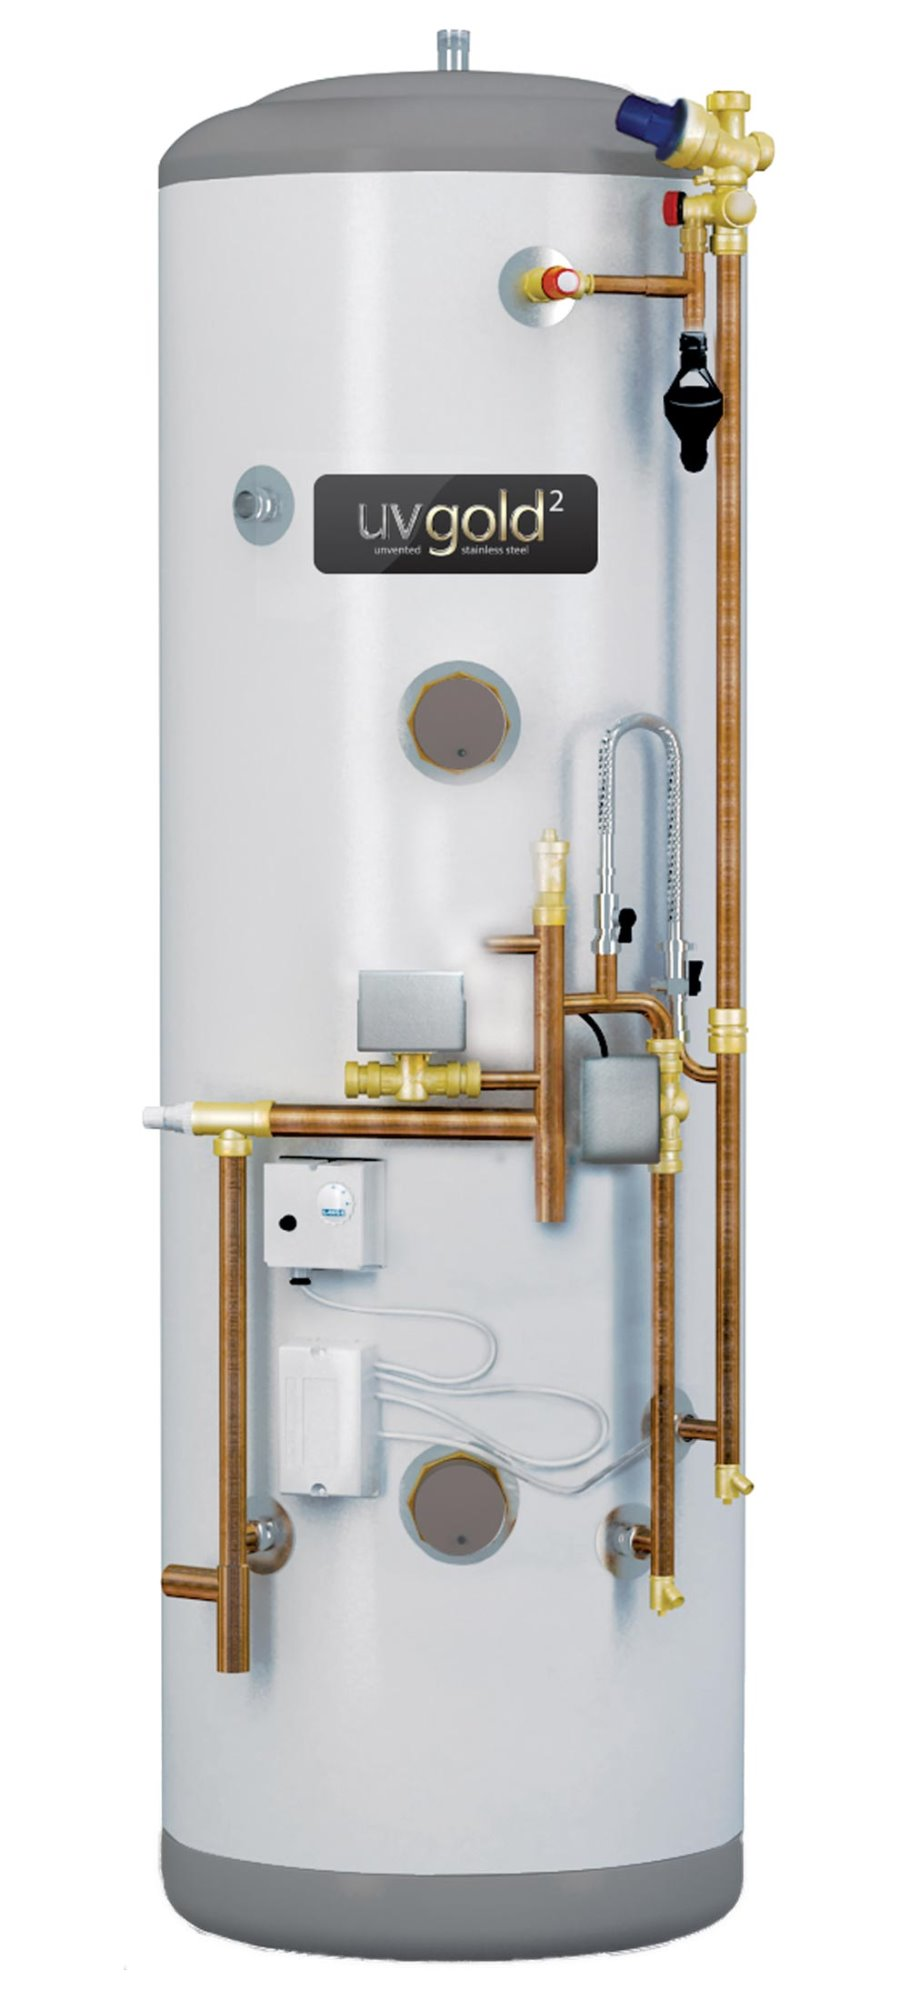 UVgold 2 Stainless | 250L System Fit | Unvented Hot Water Cylinder